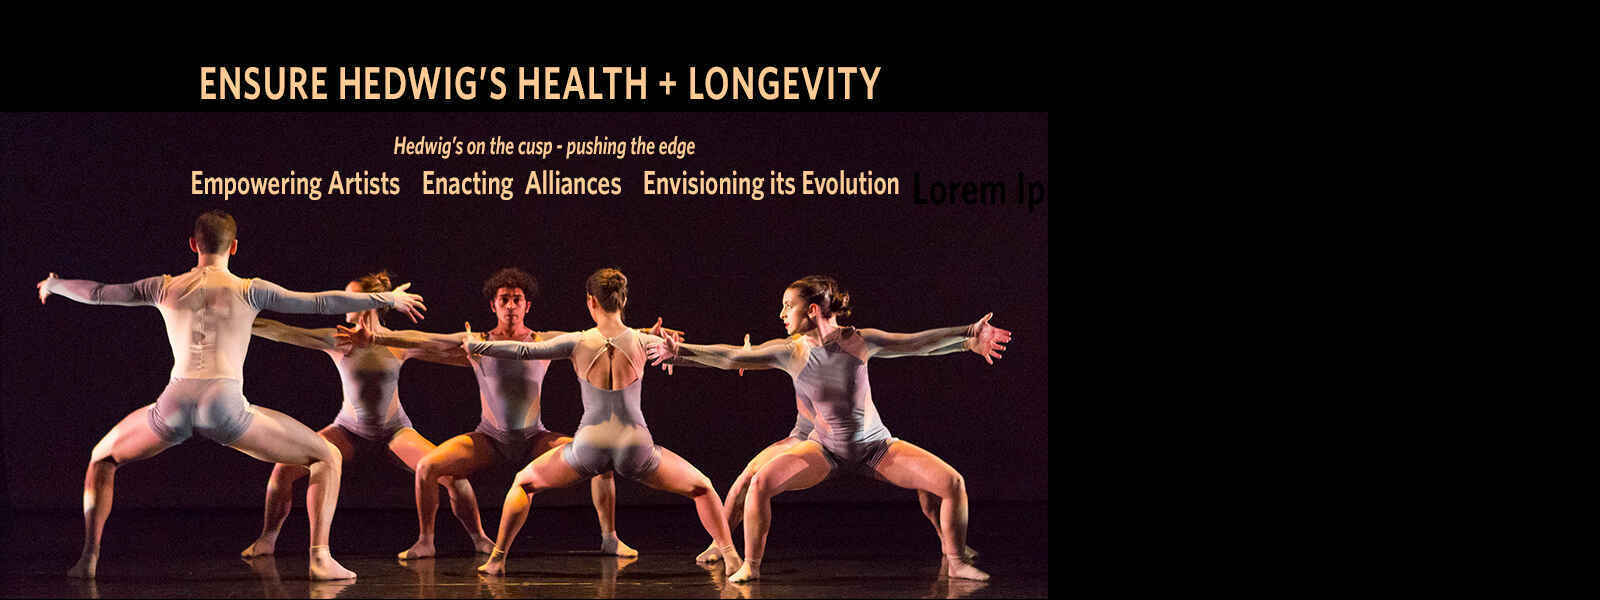 Empowering Artists  -  Enacting Alliances -  Envisioning its Evolution image